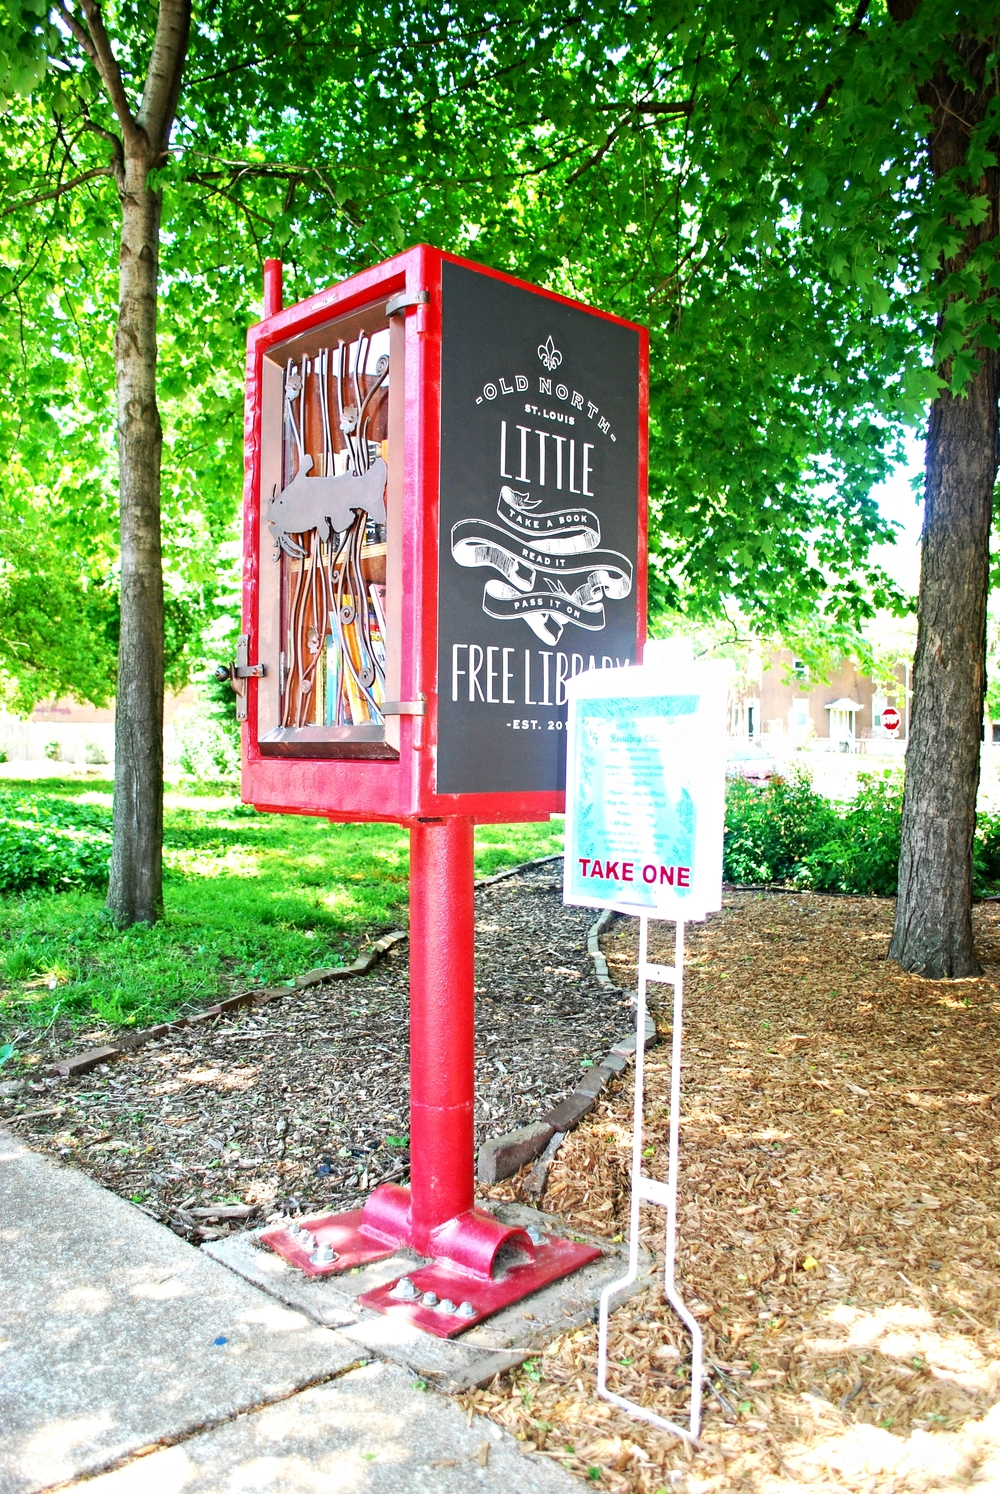 Wingmann Park & Little Free Library